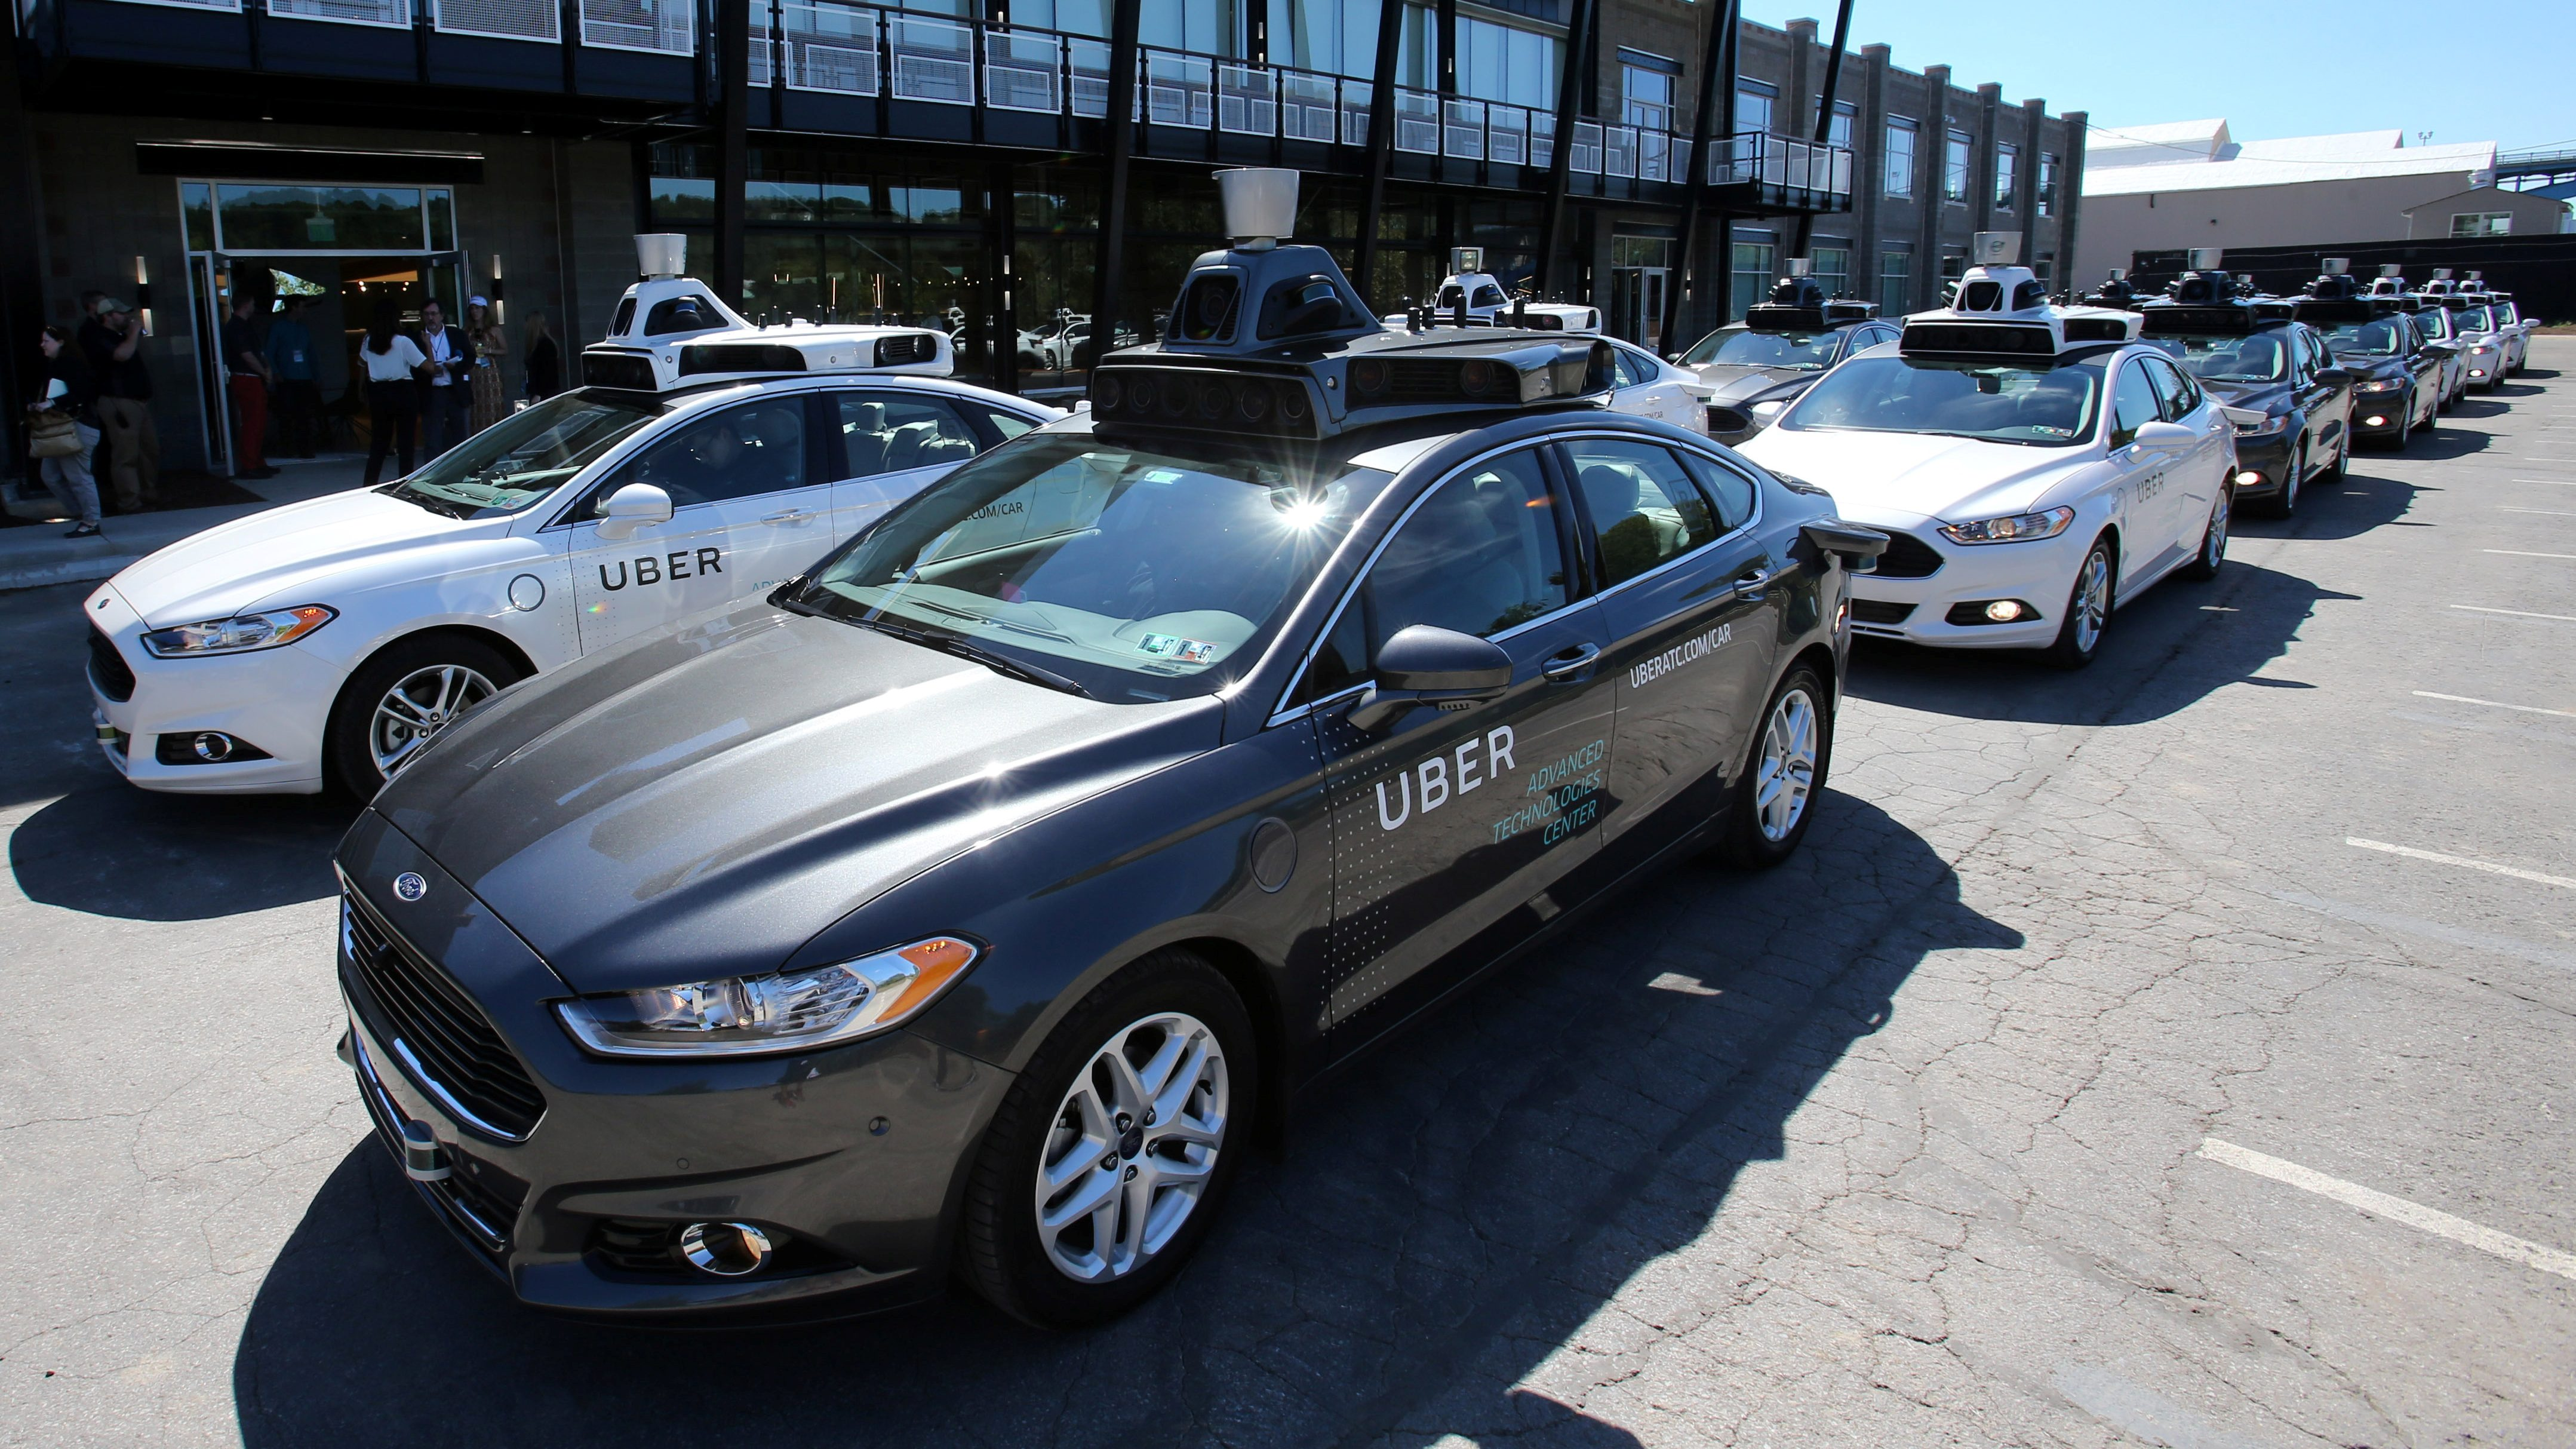 Uber secures much-needed $1 billion investment for self-driving cars